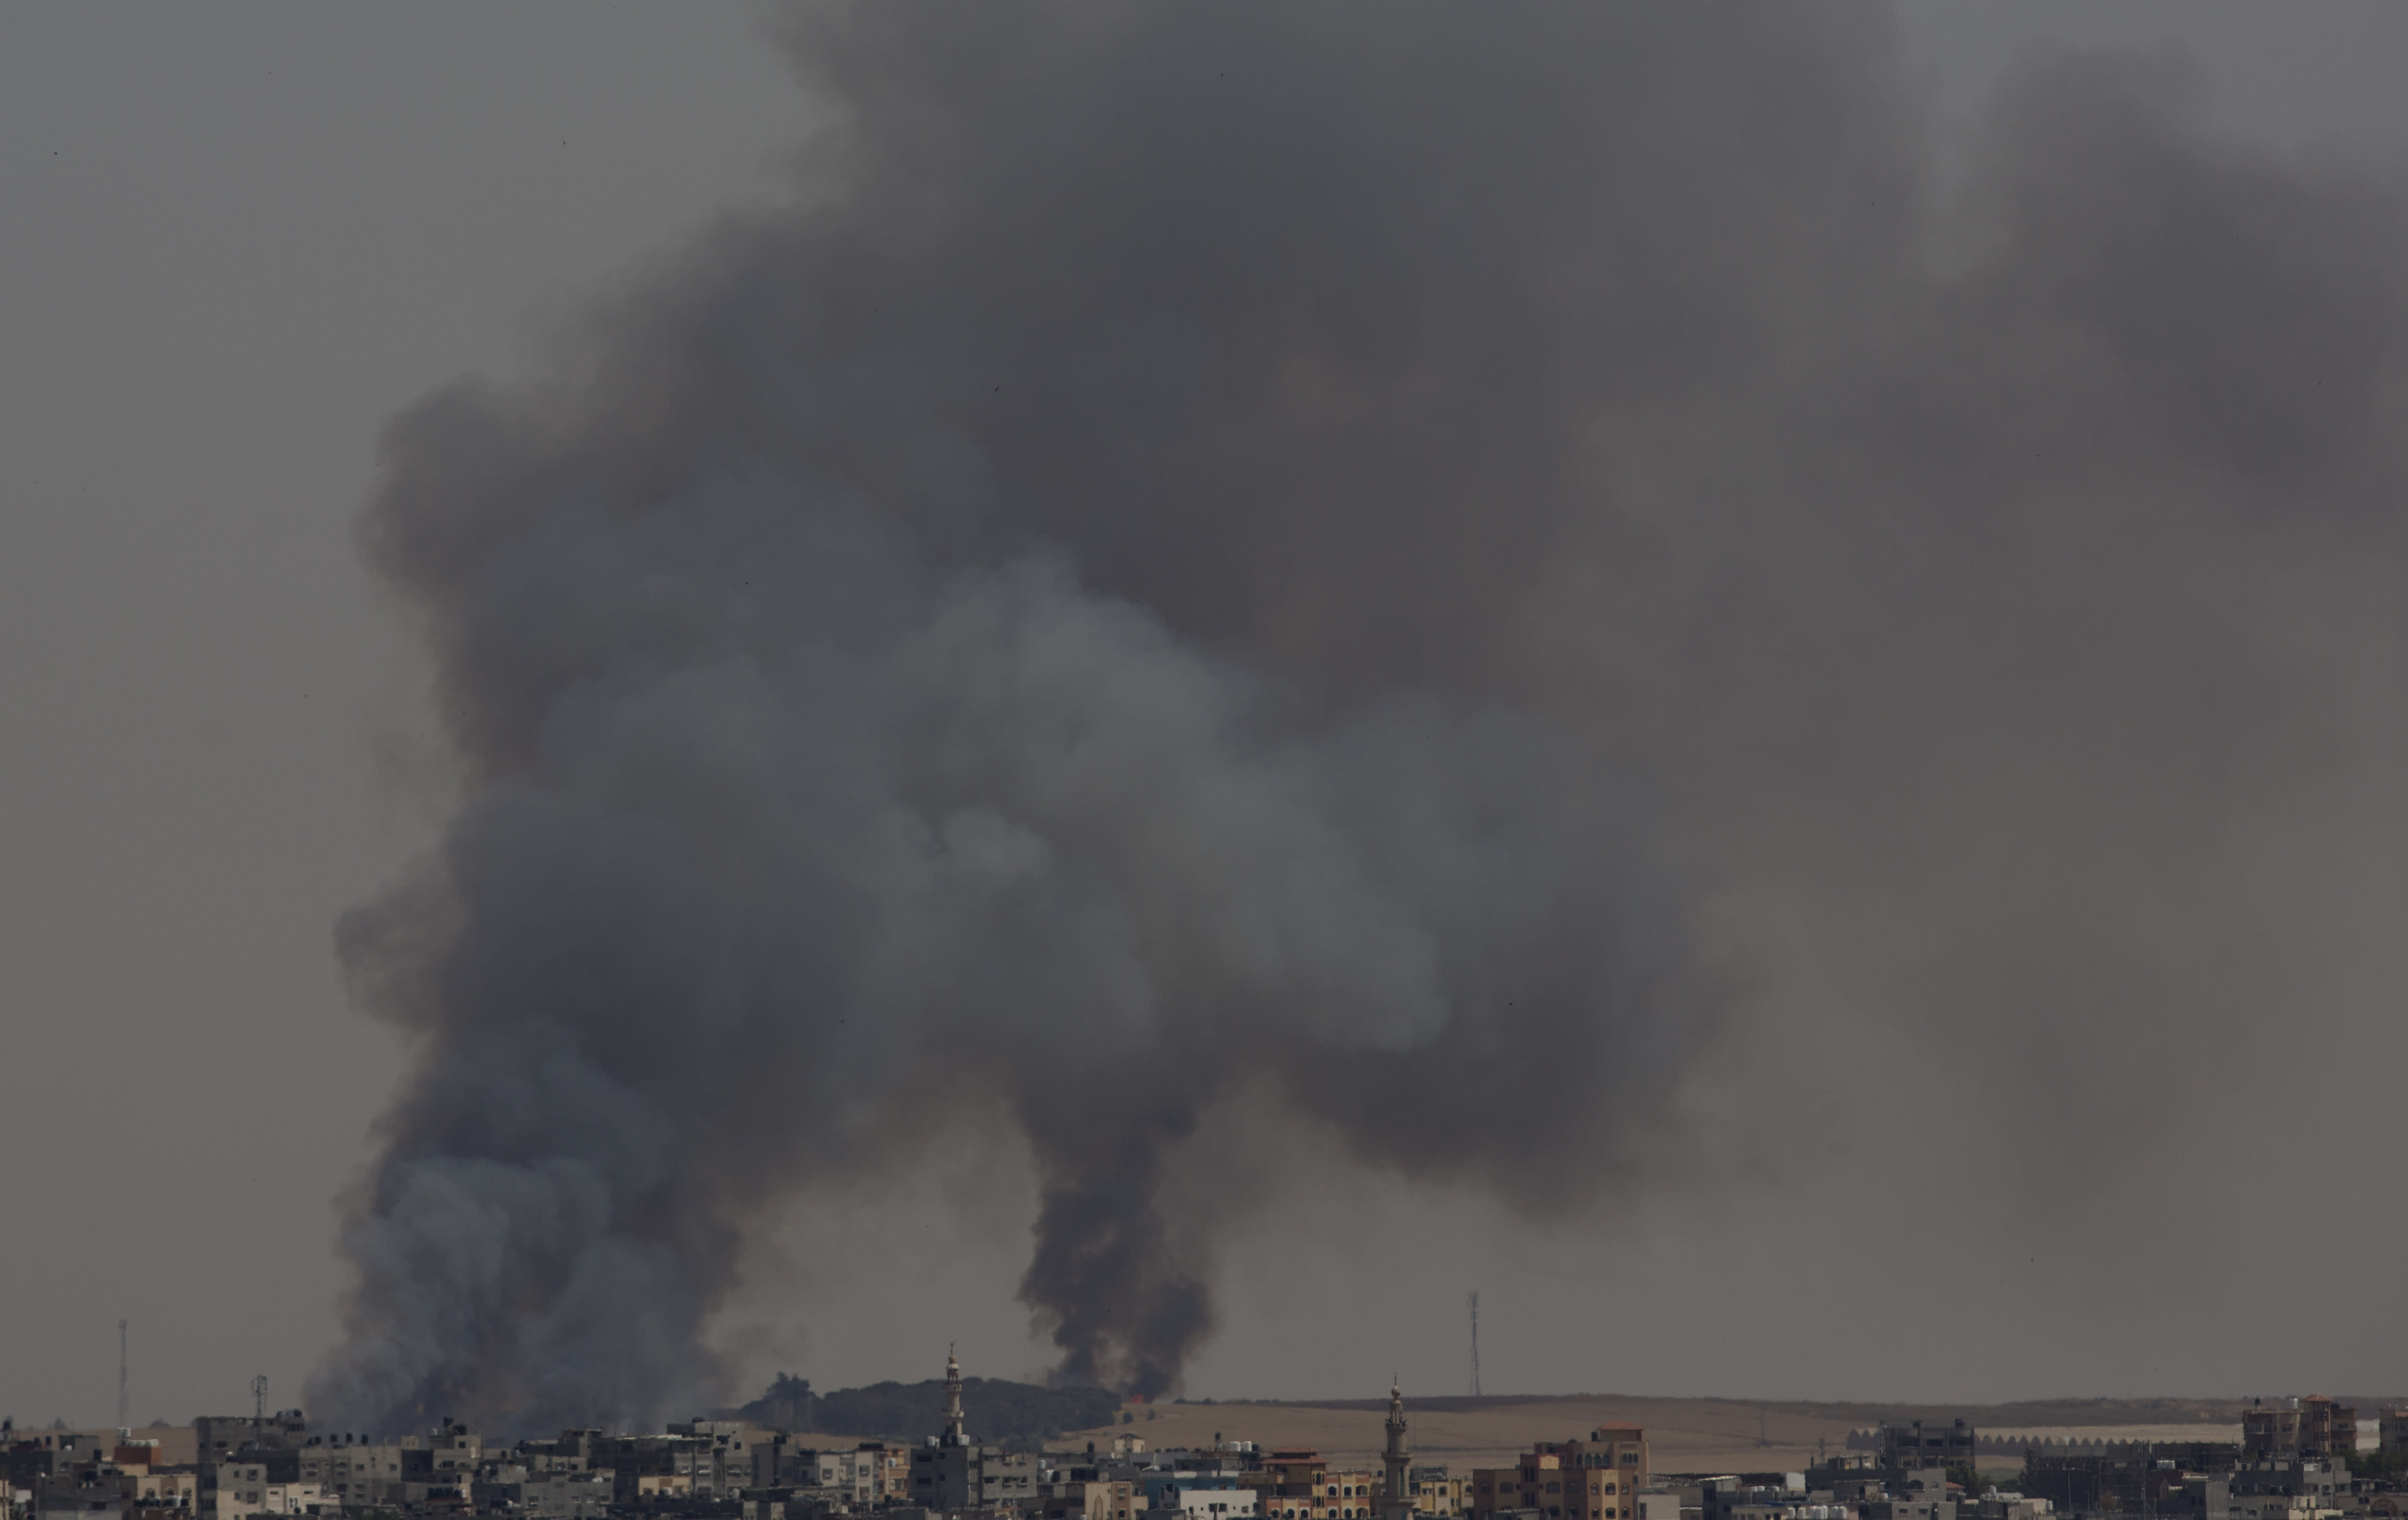 """Smoke rises from fires on Israeli farmland caused by arson balloons launched from Gaza City, Wednesday, May 15, 2019. Palestinians are marking the 71st anniversary of their mass displacement during the 1948 war around Israel's creation. Demonstrations were held across the Israeli-occupied West Bank and the Gaza Strip on Wednesday to mark what the Palestinians call the """"nakba,"""" or """"catastrophe."""" (AP Photo/Hatem Moussa)"""